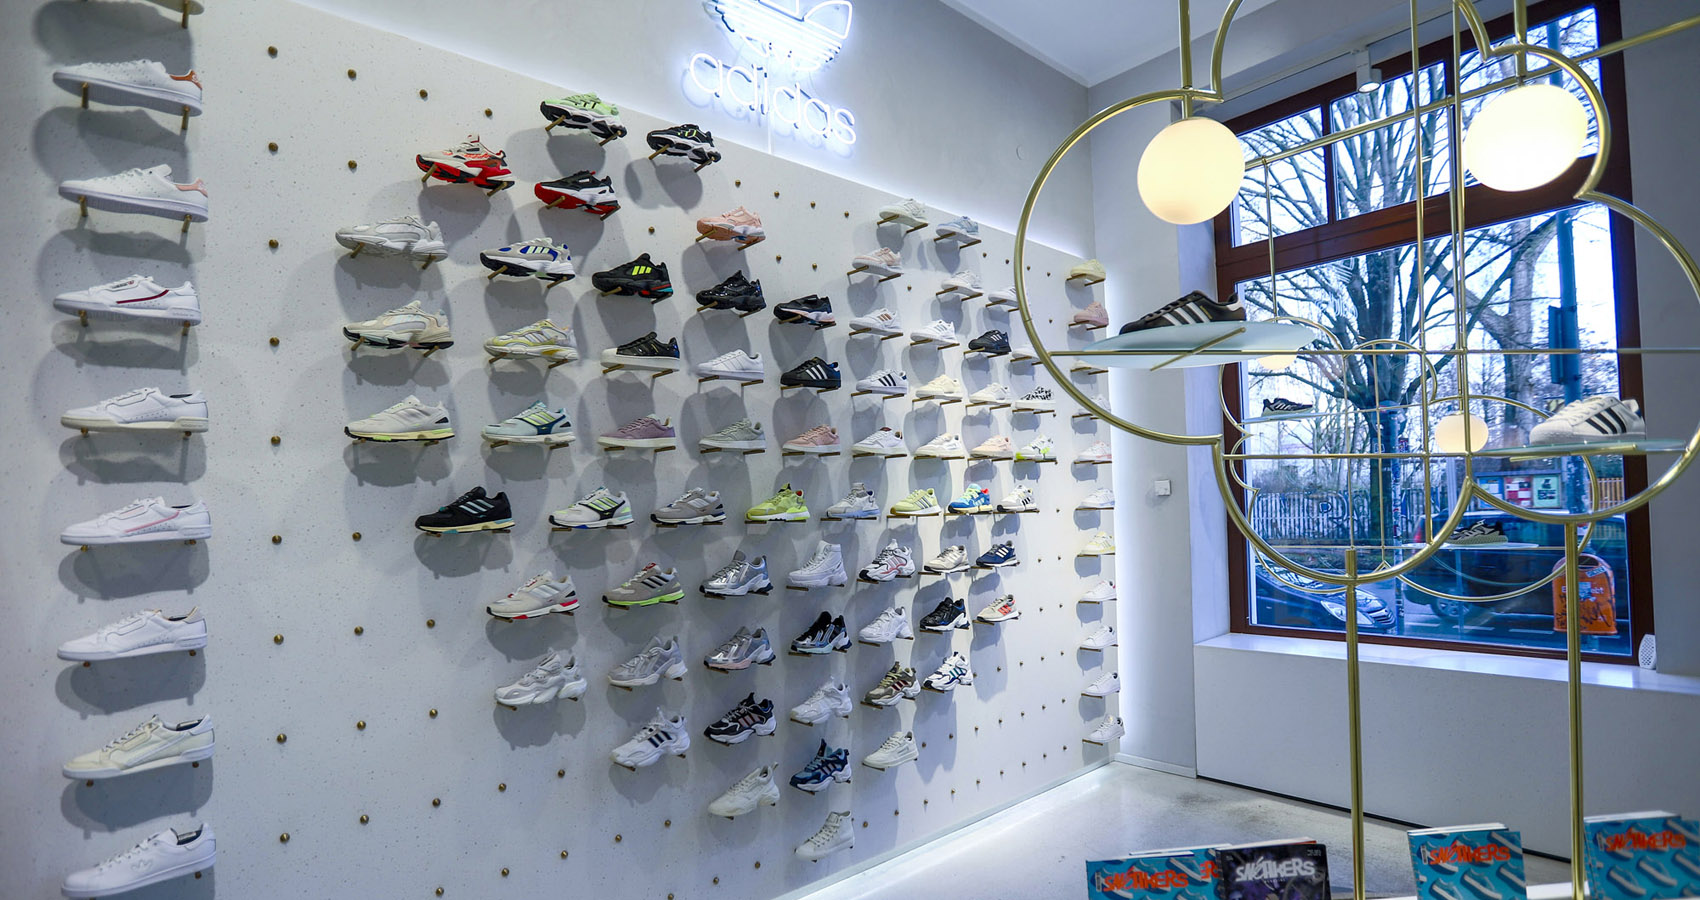 The Female Staff From The Overkill Women's Store Describes Their Sneaker Collection To Us And More!